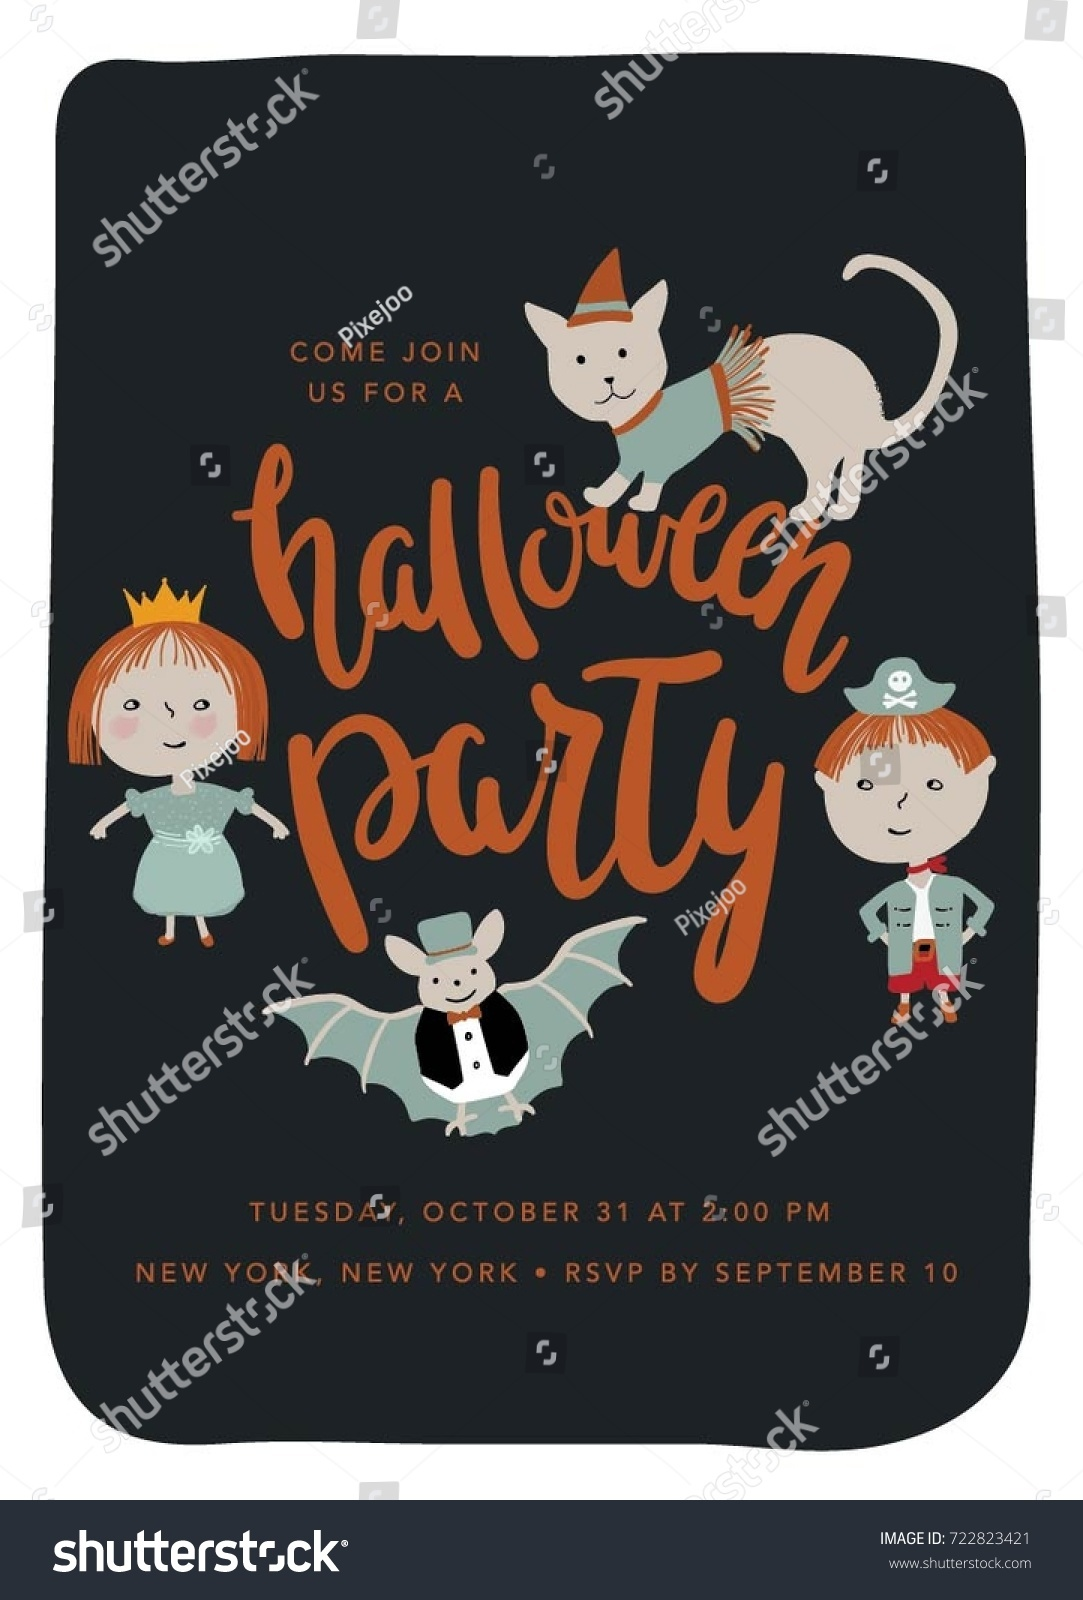 Cute Halloween Party Invitations Gallery - Party Invitations Ideas